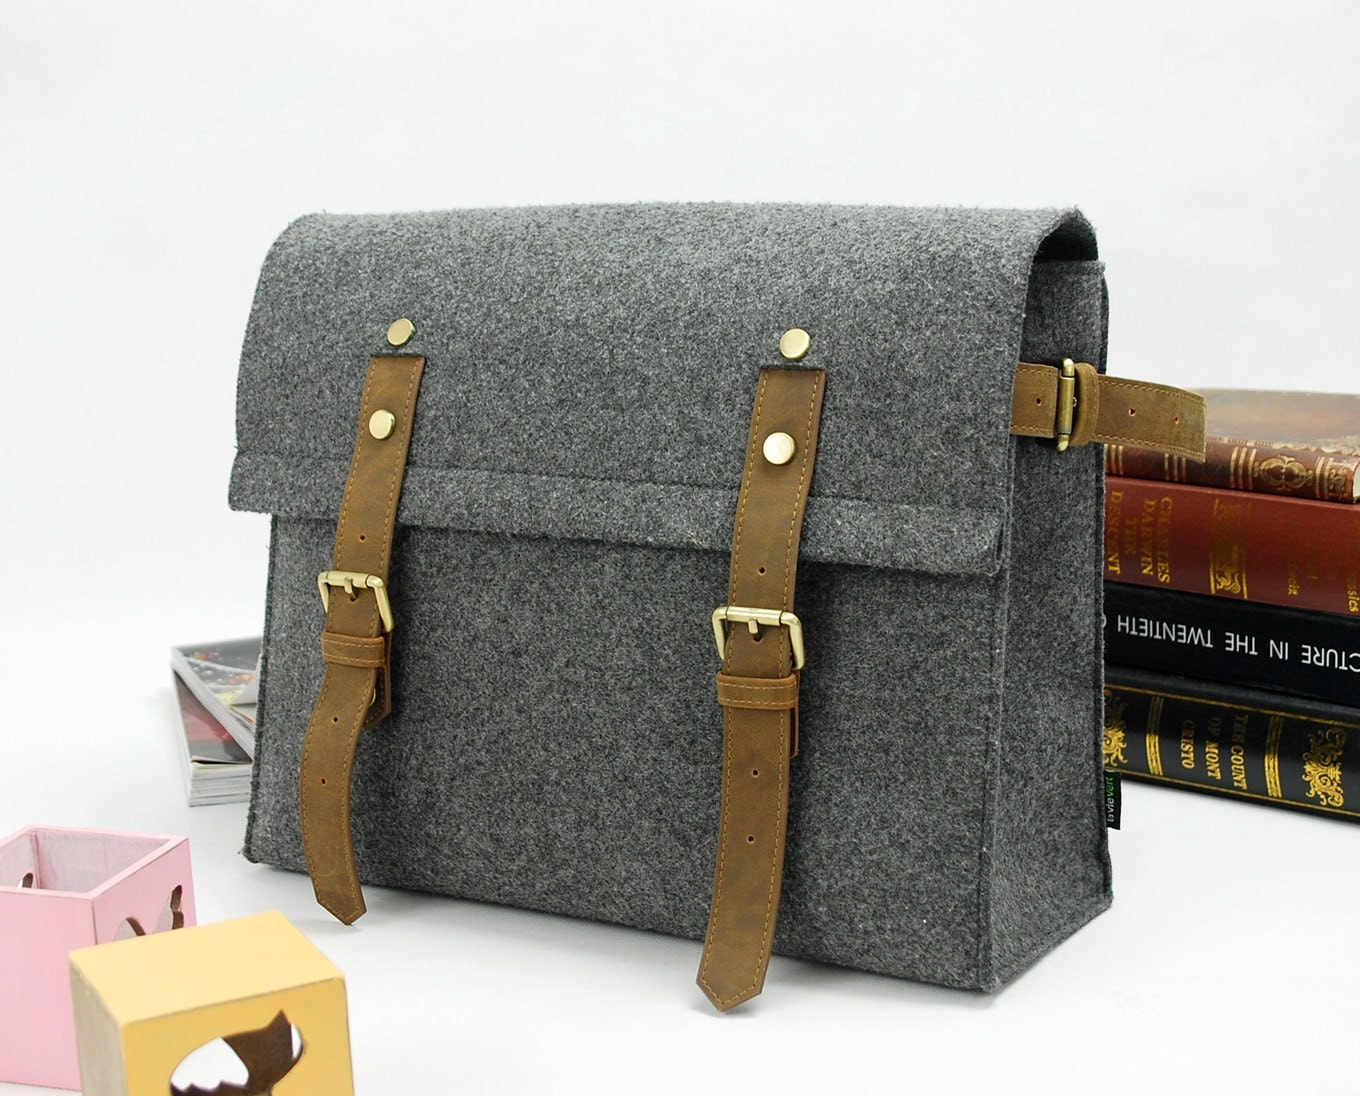 Felt Large Messenger Bag Shoulder Bag School Bag College Bag